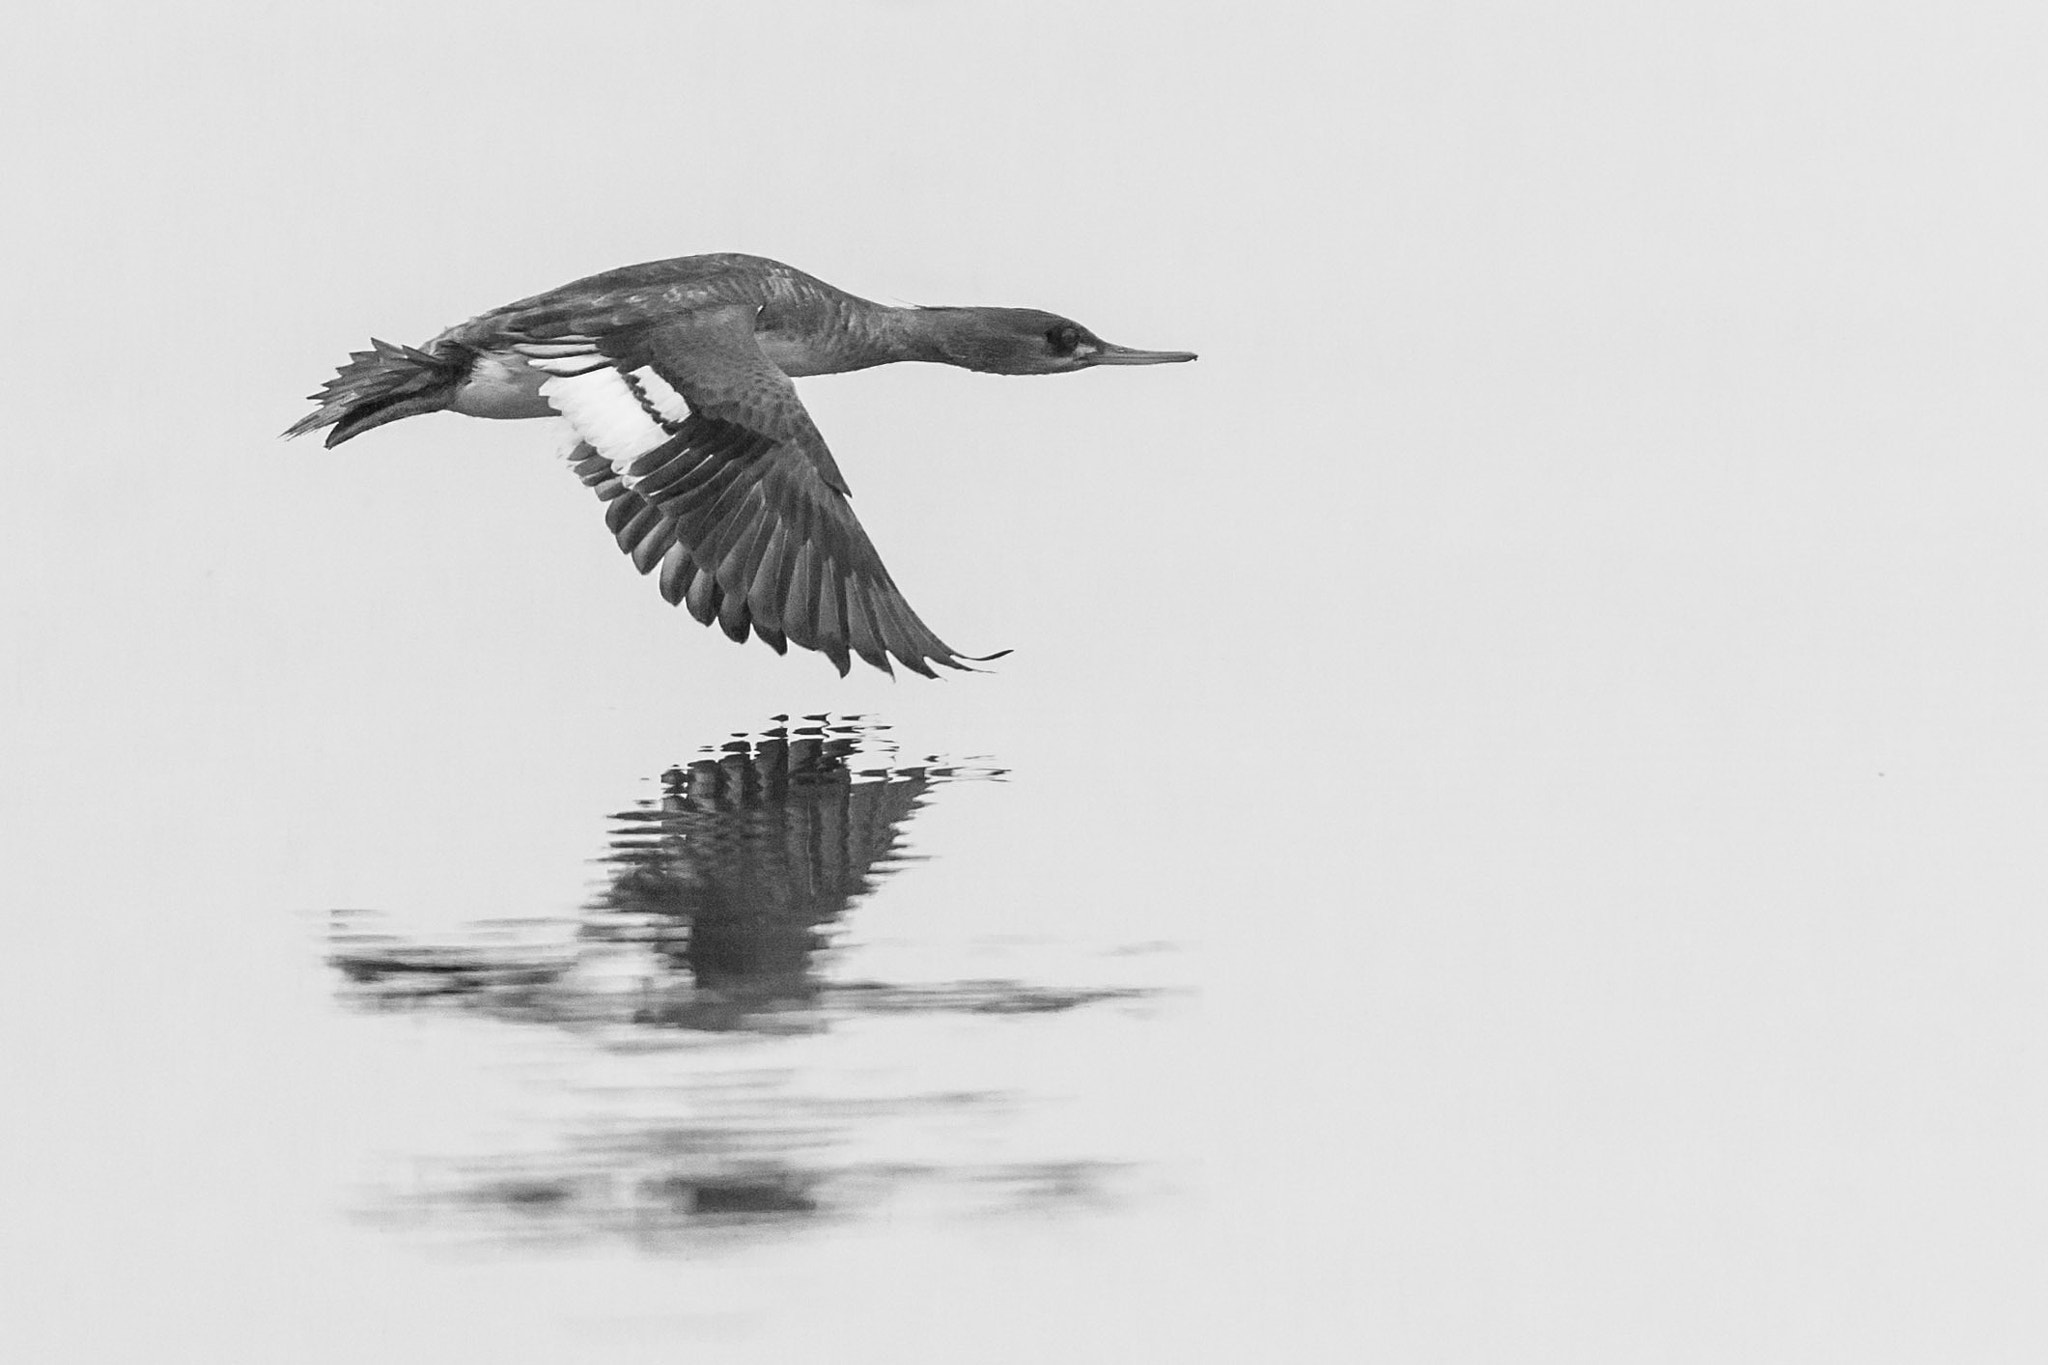 Photograph Merganser Duck Flying by Tony Northrup on 500px